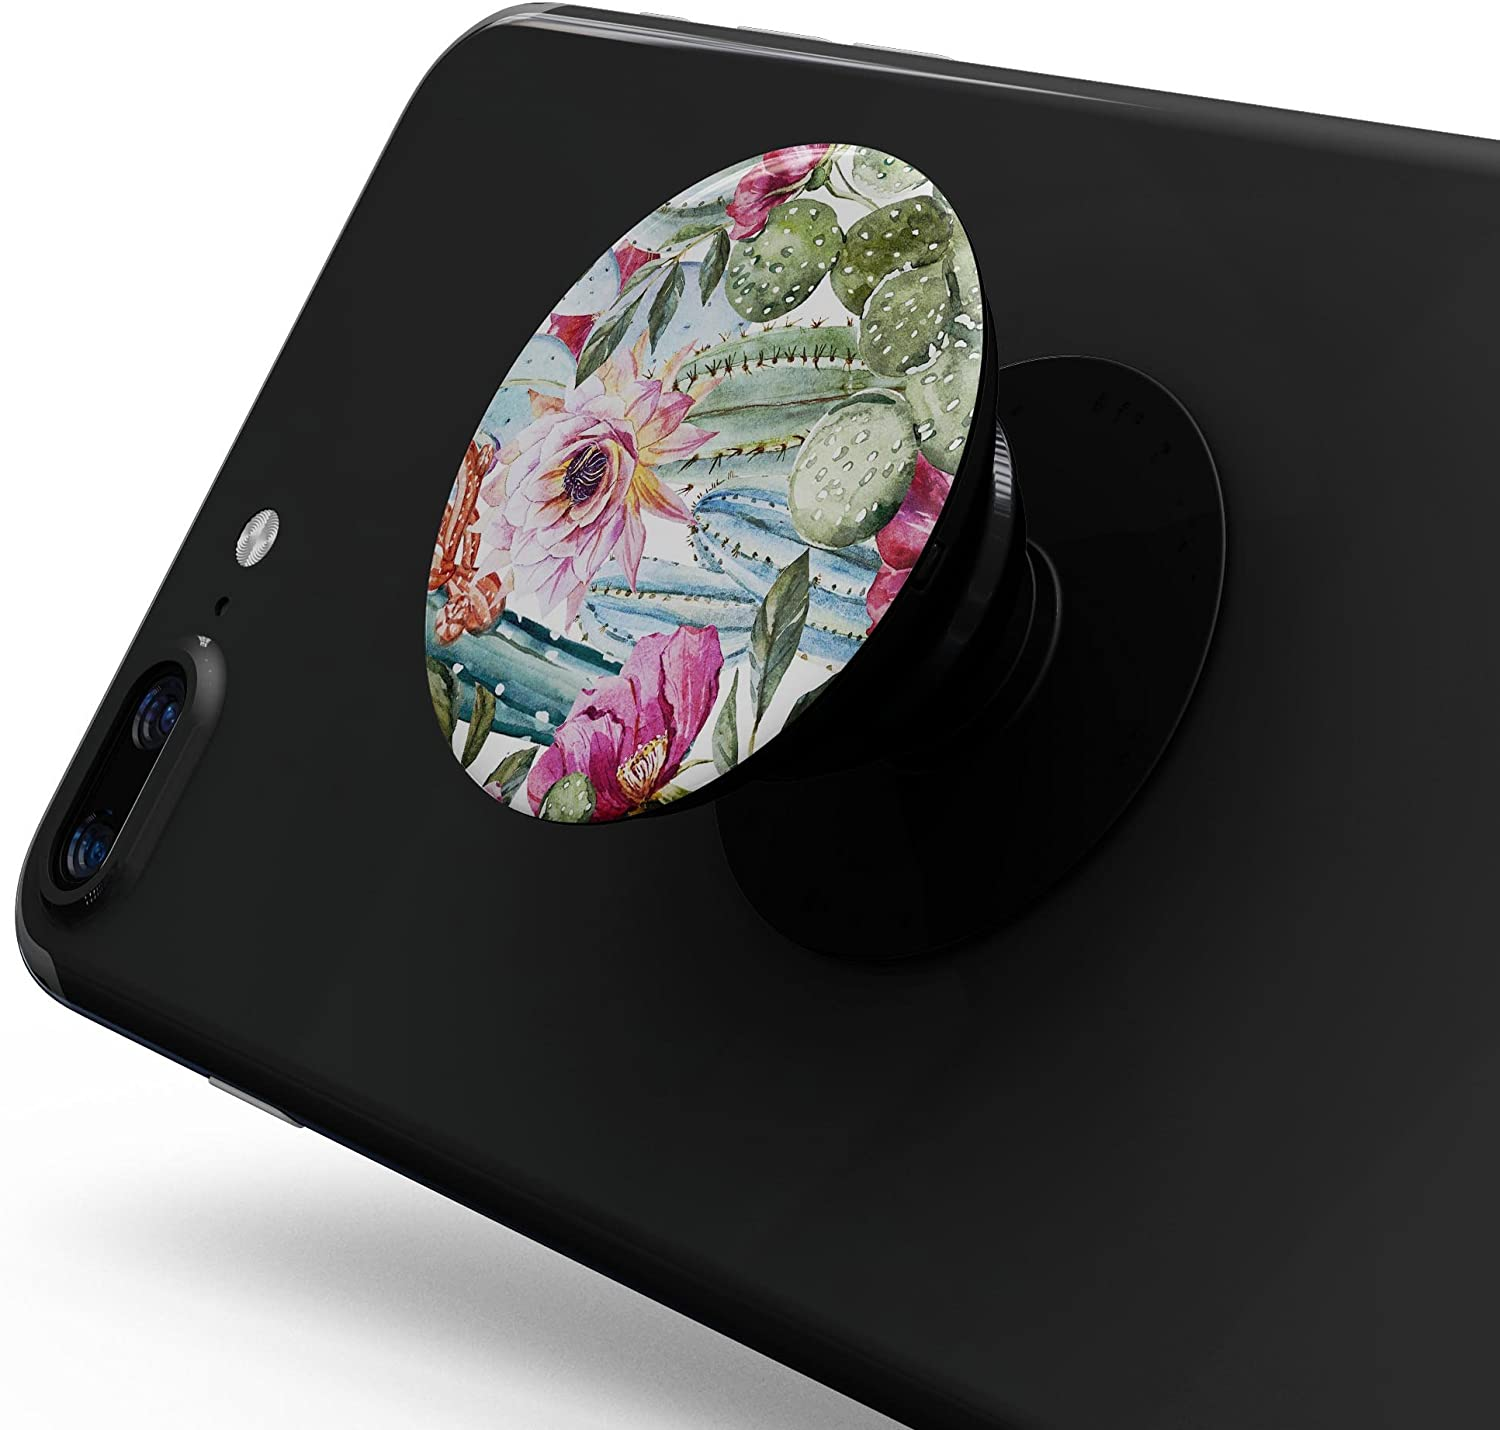 DesignSkinz Premium Decal Sticker Skin-Kit for PopSockets Smartphone Extendable Grip /& Stand Vintage Watercolor Cactus Bloom